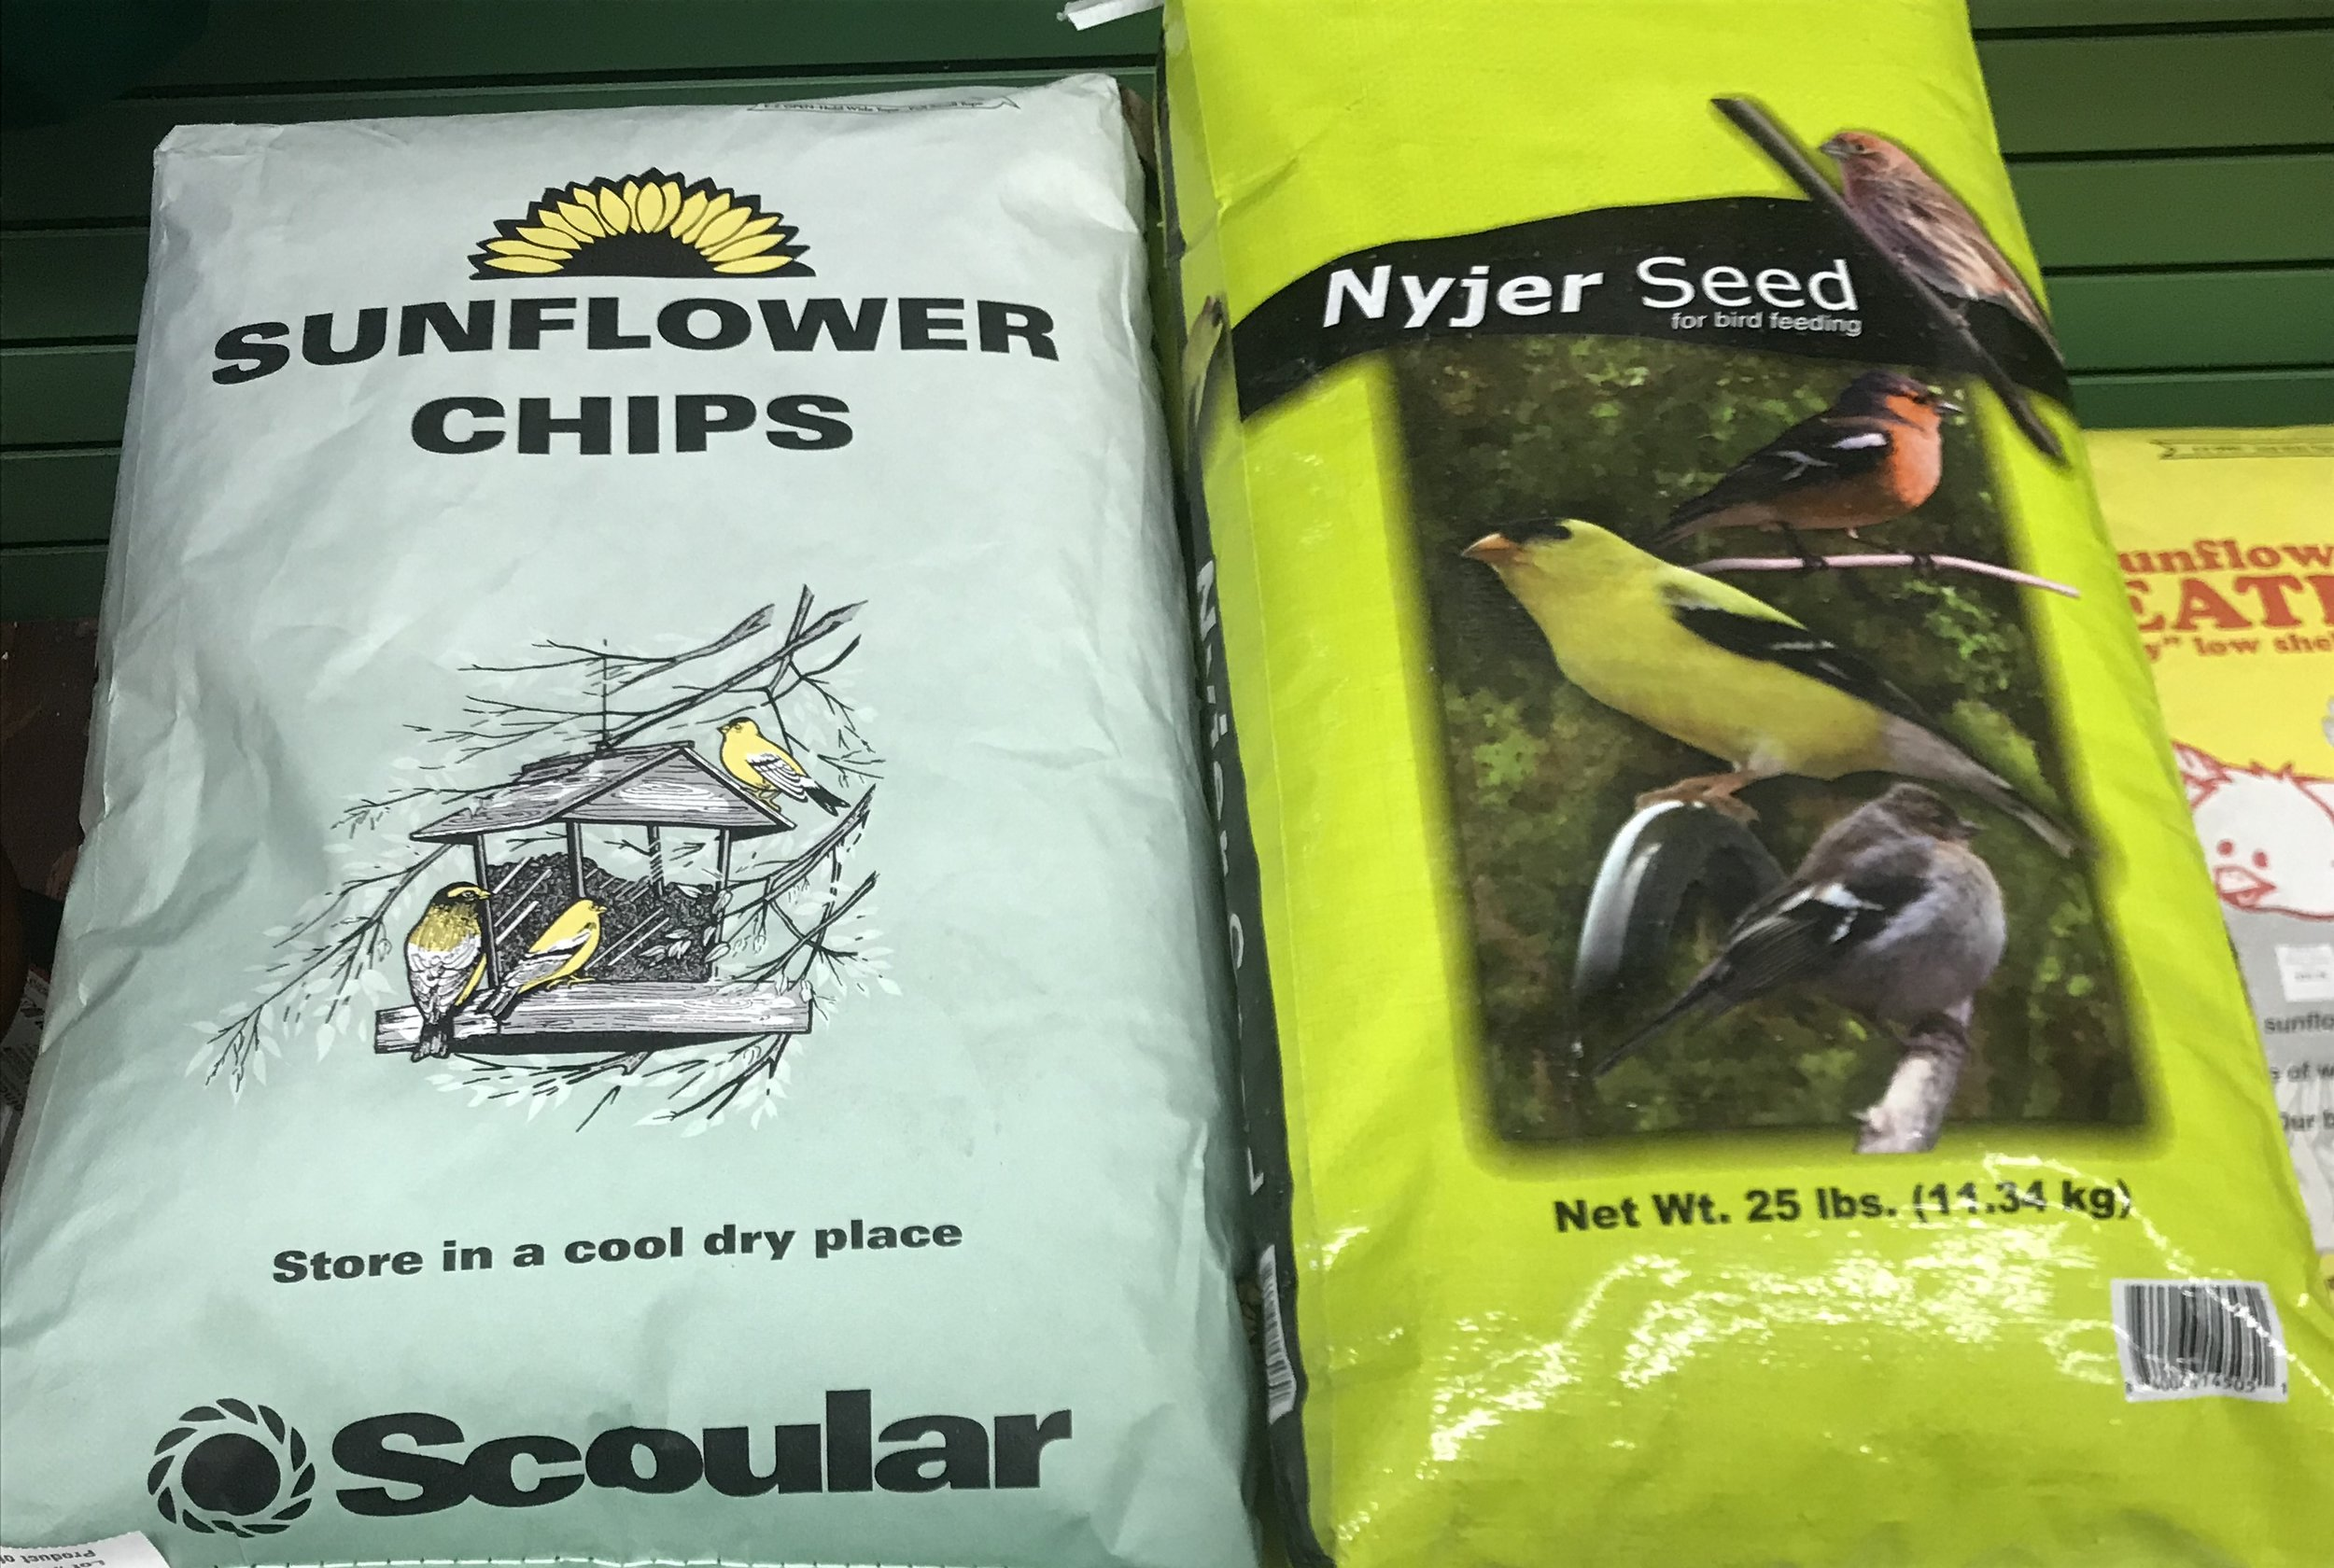 We have a wide variety of seeds!